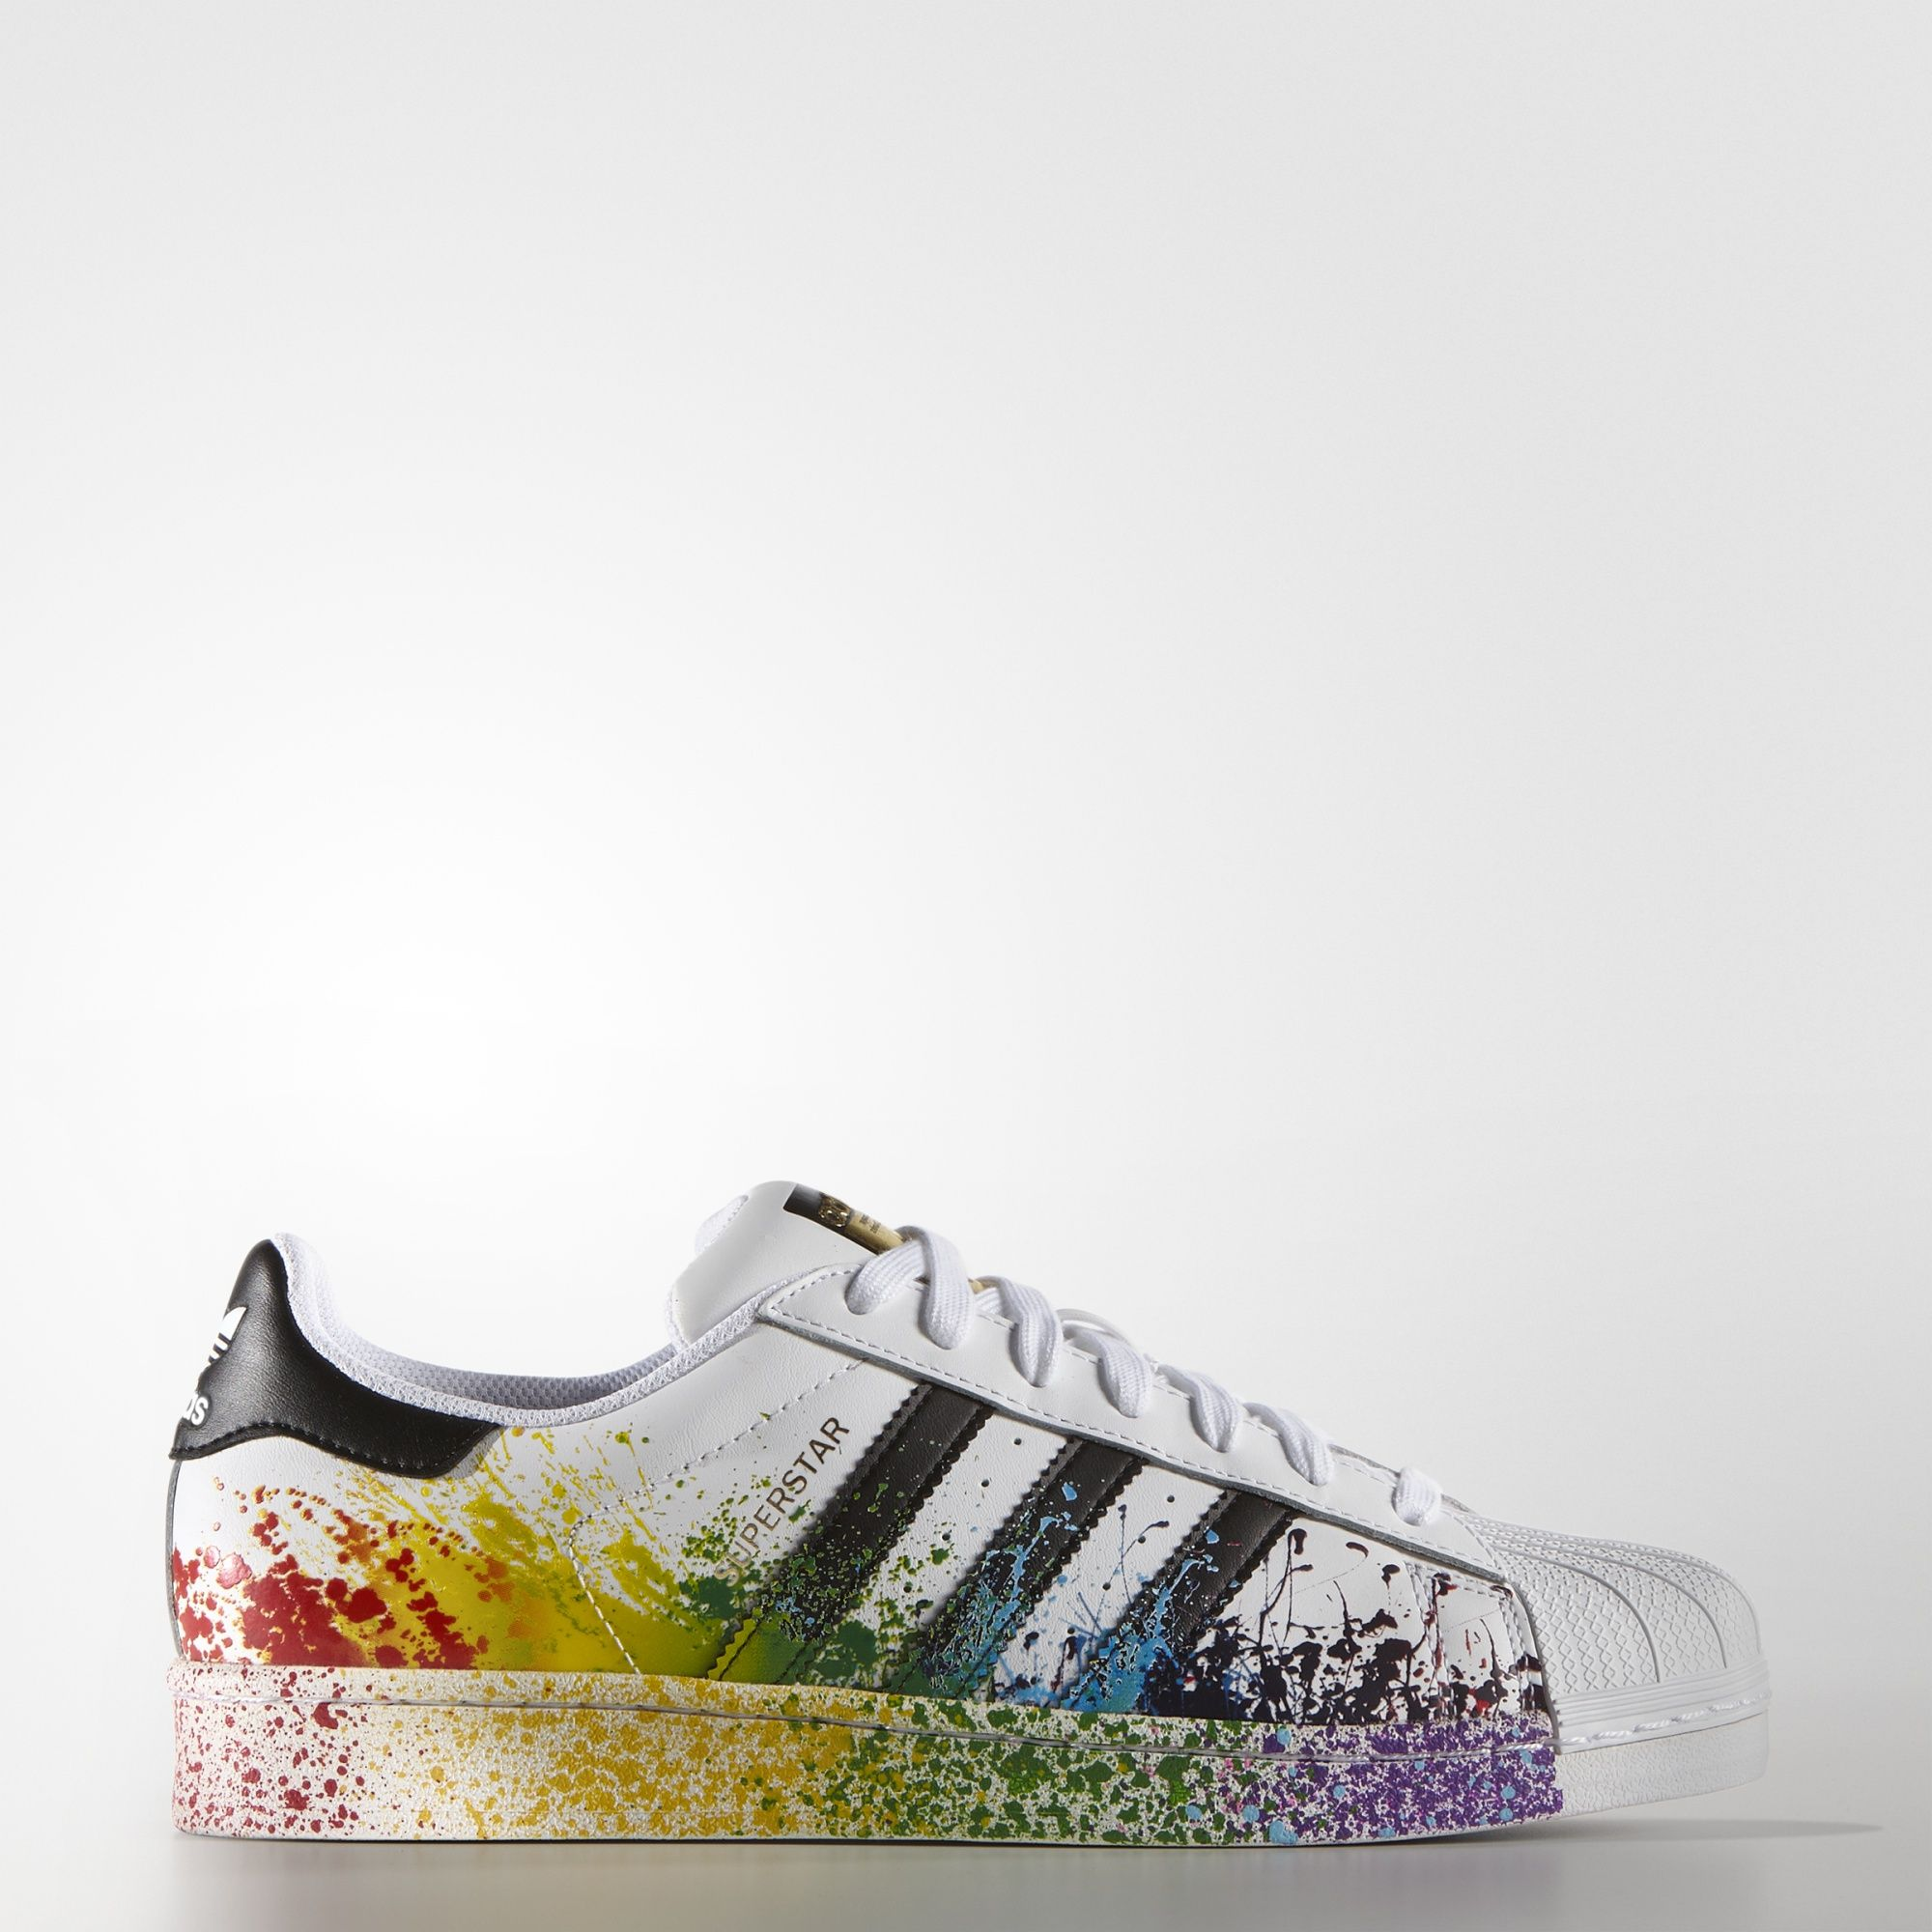 reputable site 759b0 b3d48 adidas Originals celebrates Pride 2016 with a vibrant LGBT Pride  collection. These men s Superstar shoes rock the rainbow with an  eye-catching splatter ...